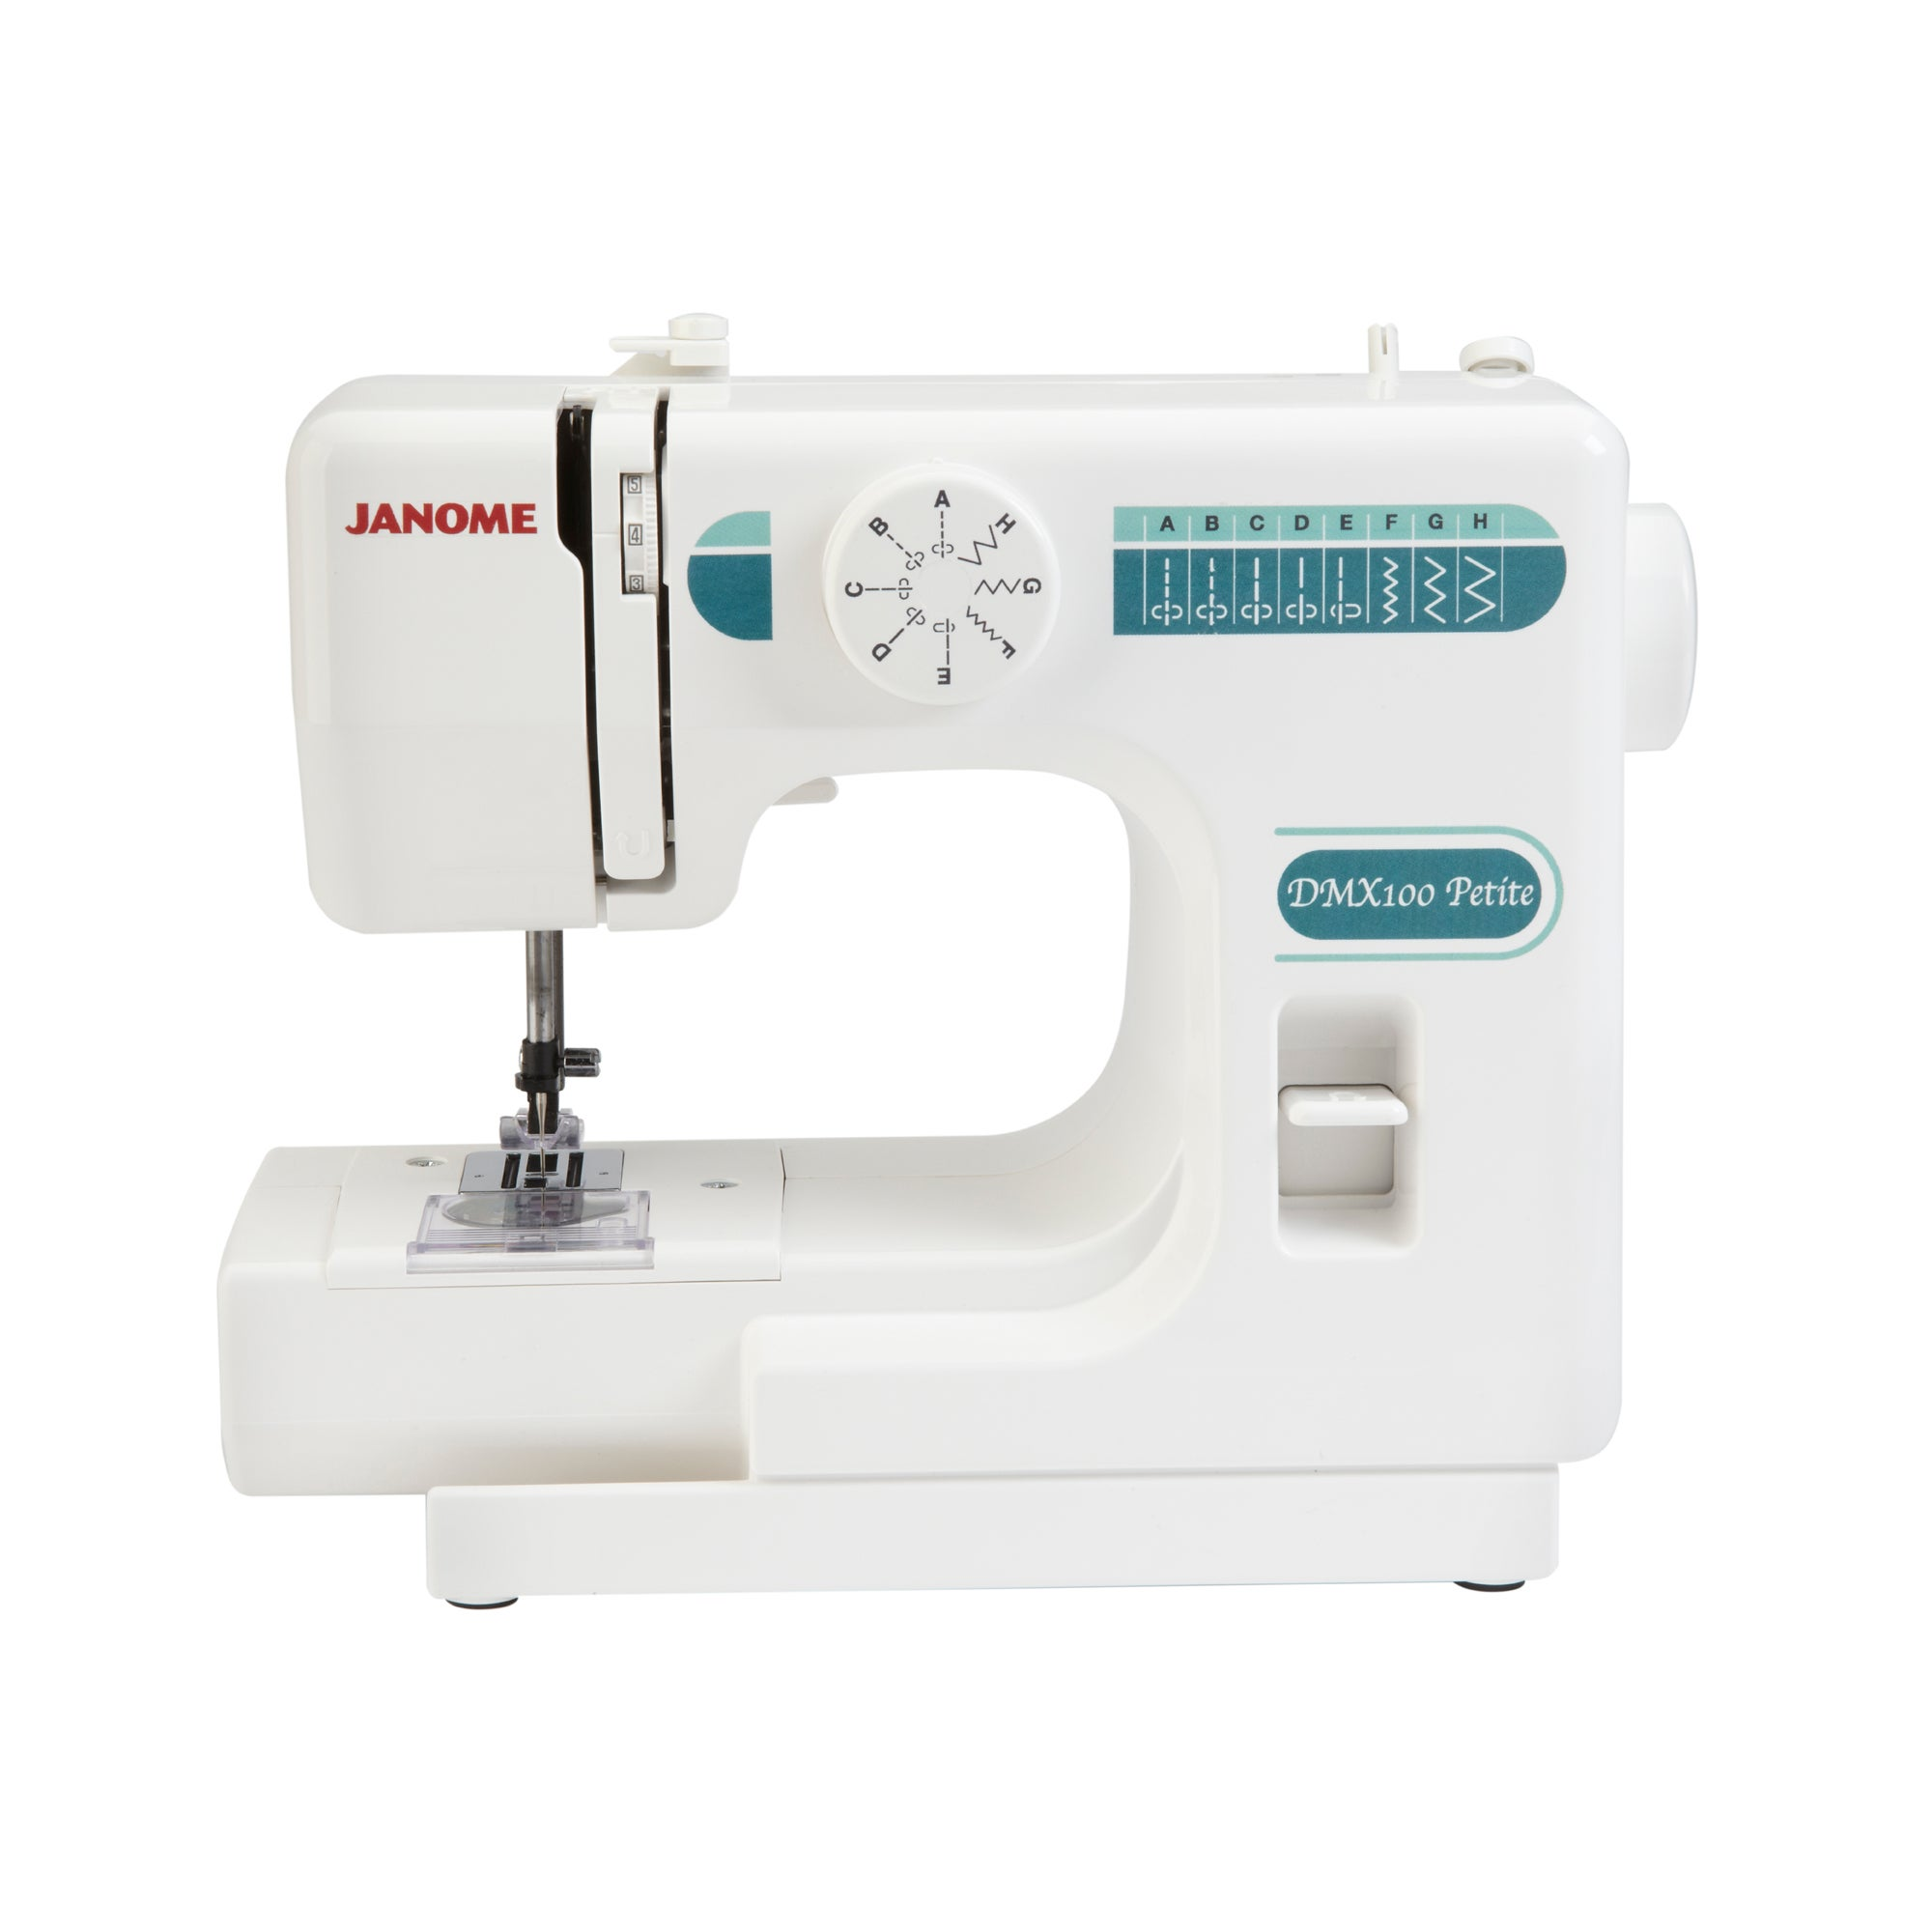 Janome DMX100 Petite Sewing Machine White